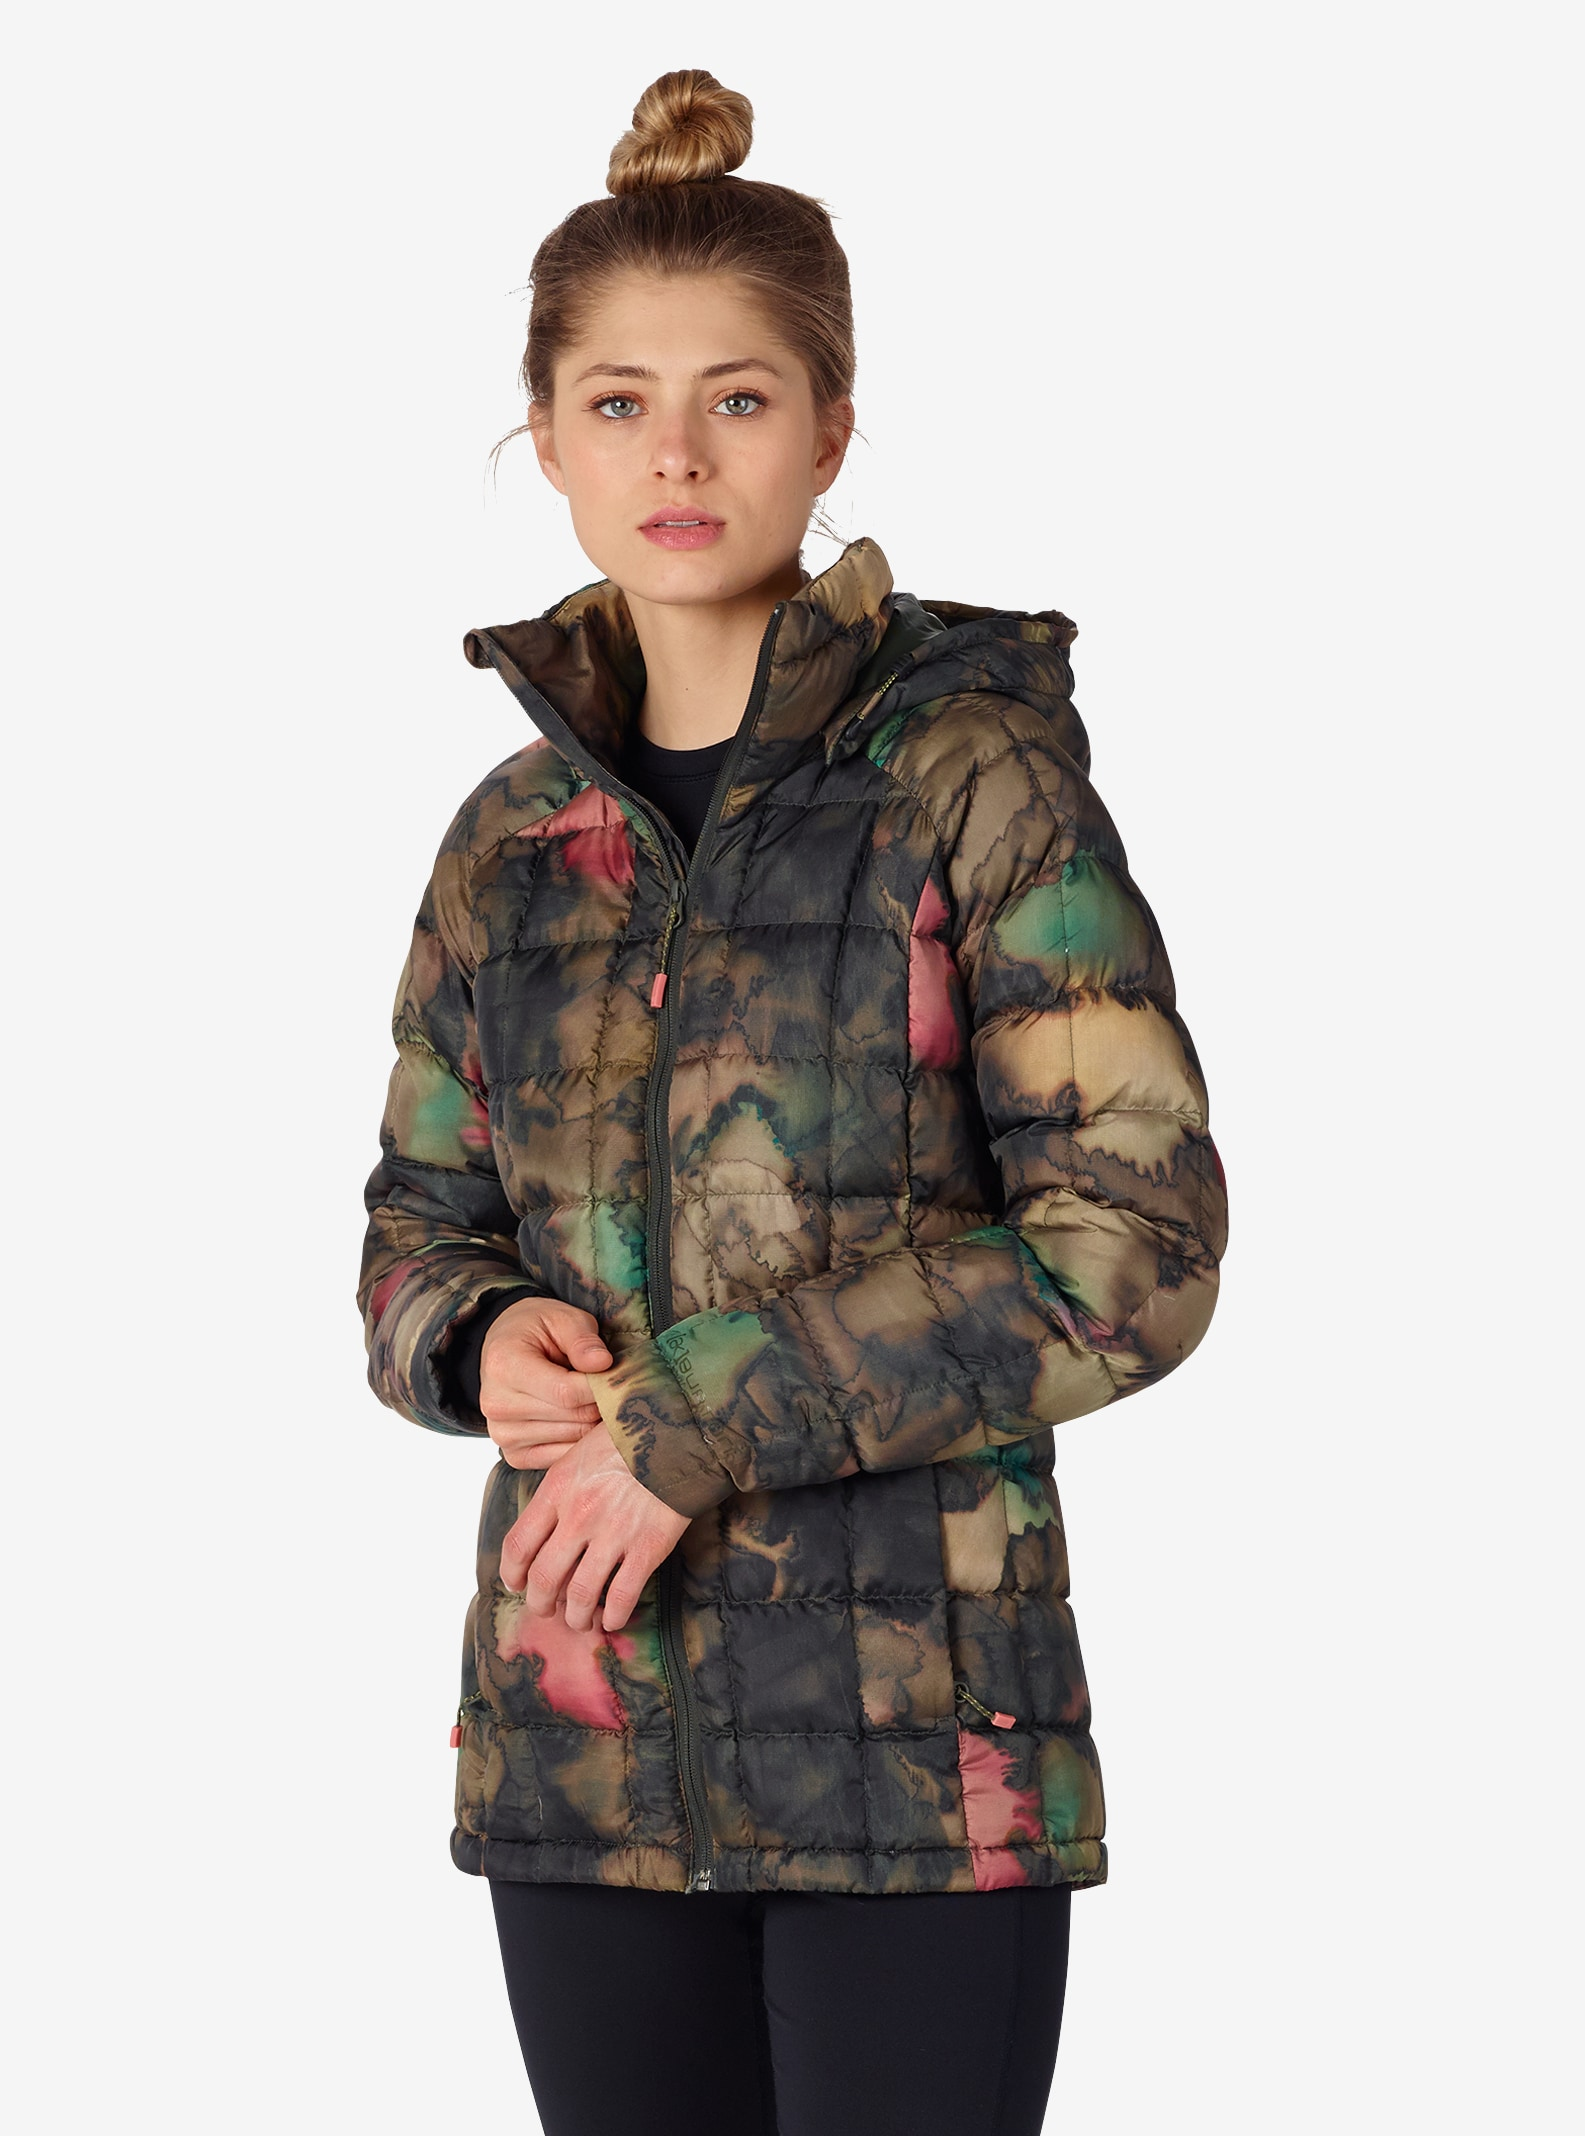 Women's Burton [ak] Baker Down Insulator Jacket shown in Tea Camo